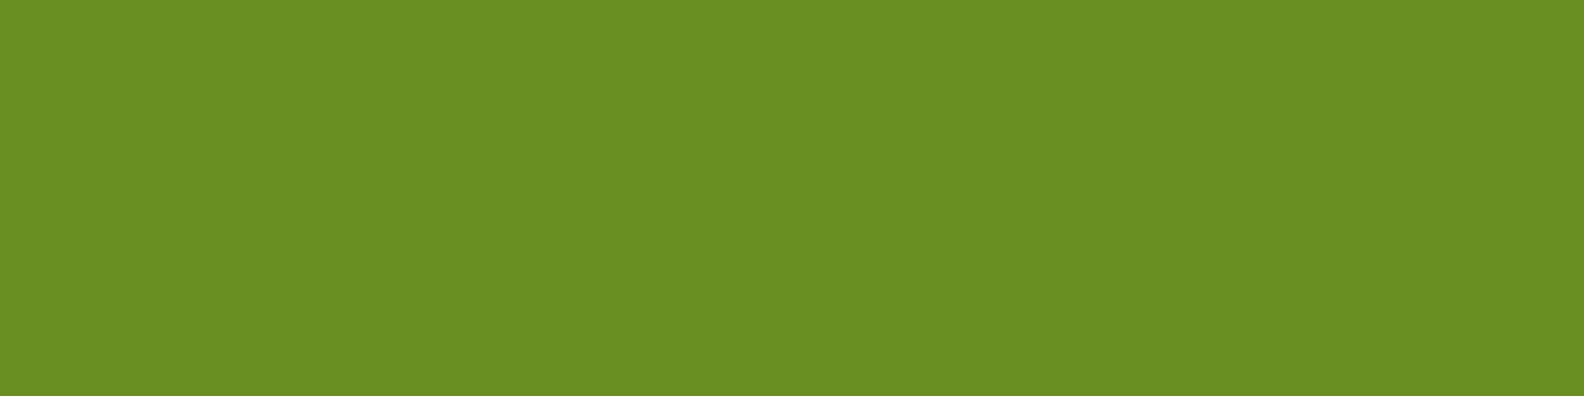 1584x396 Olive Drab Number Three Solid Color Background